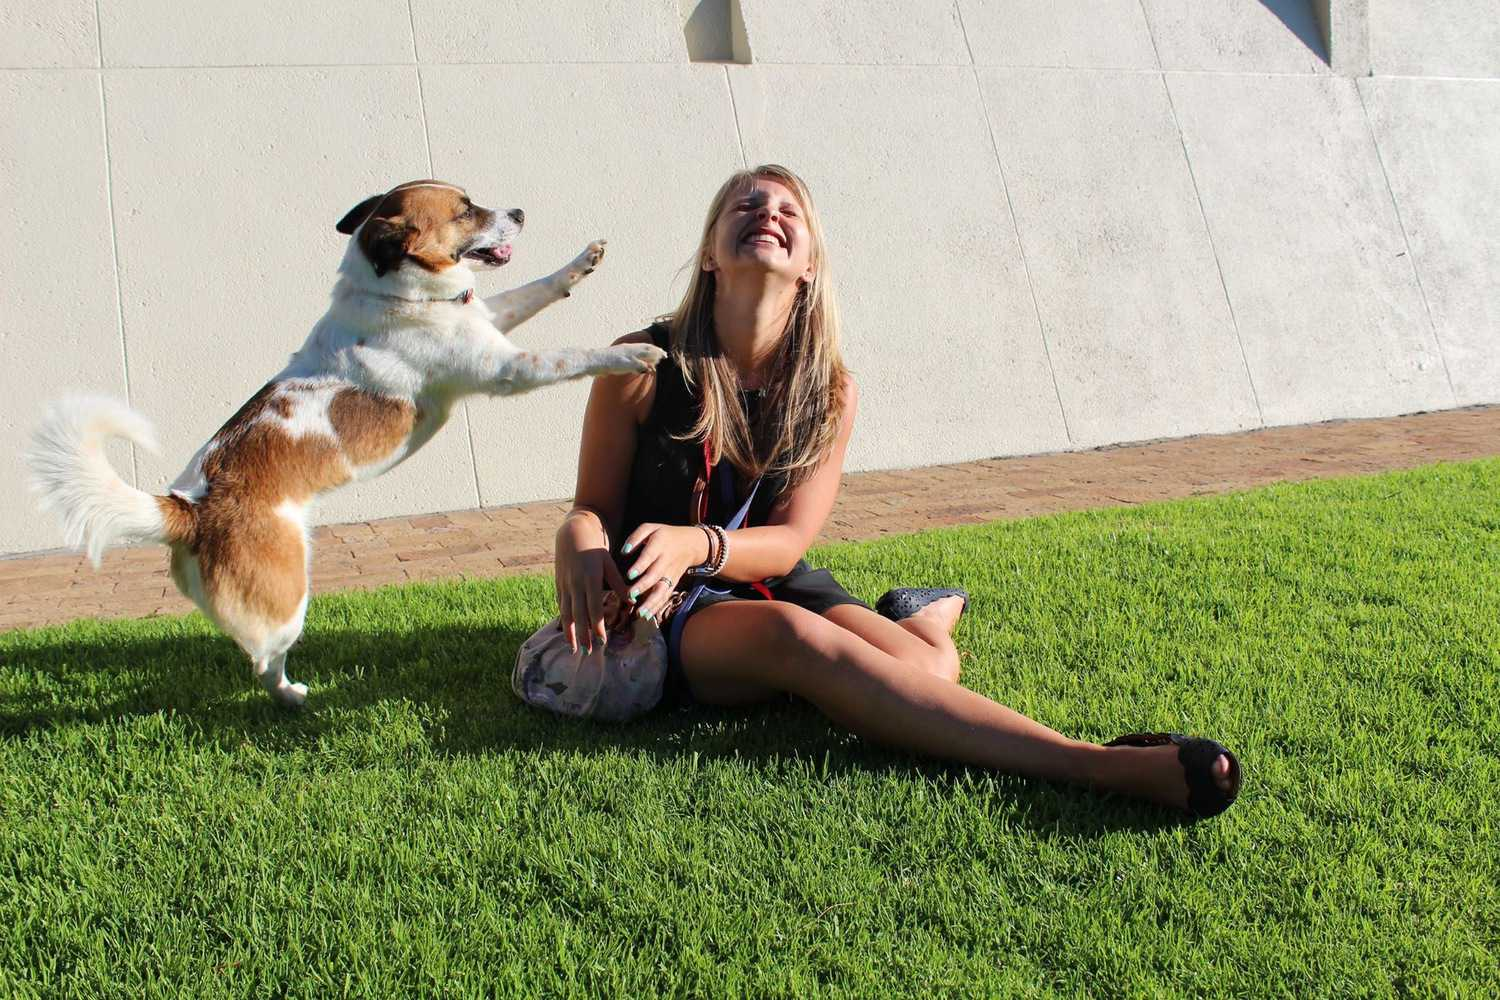 Du Plessis and her dog Baloo.